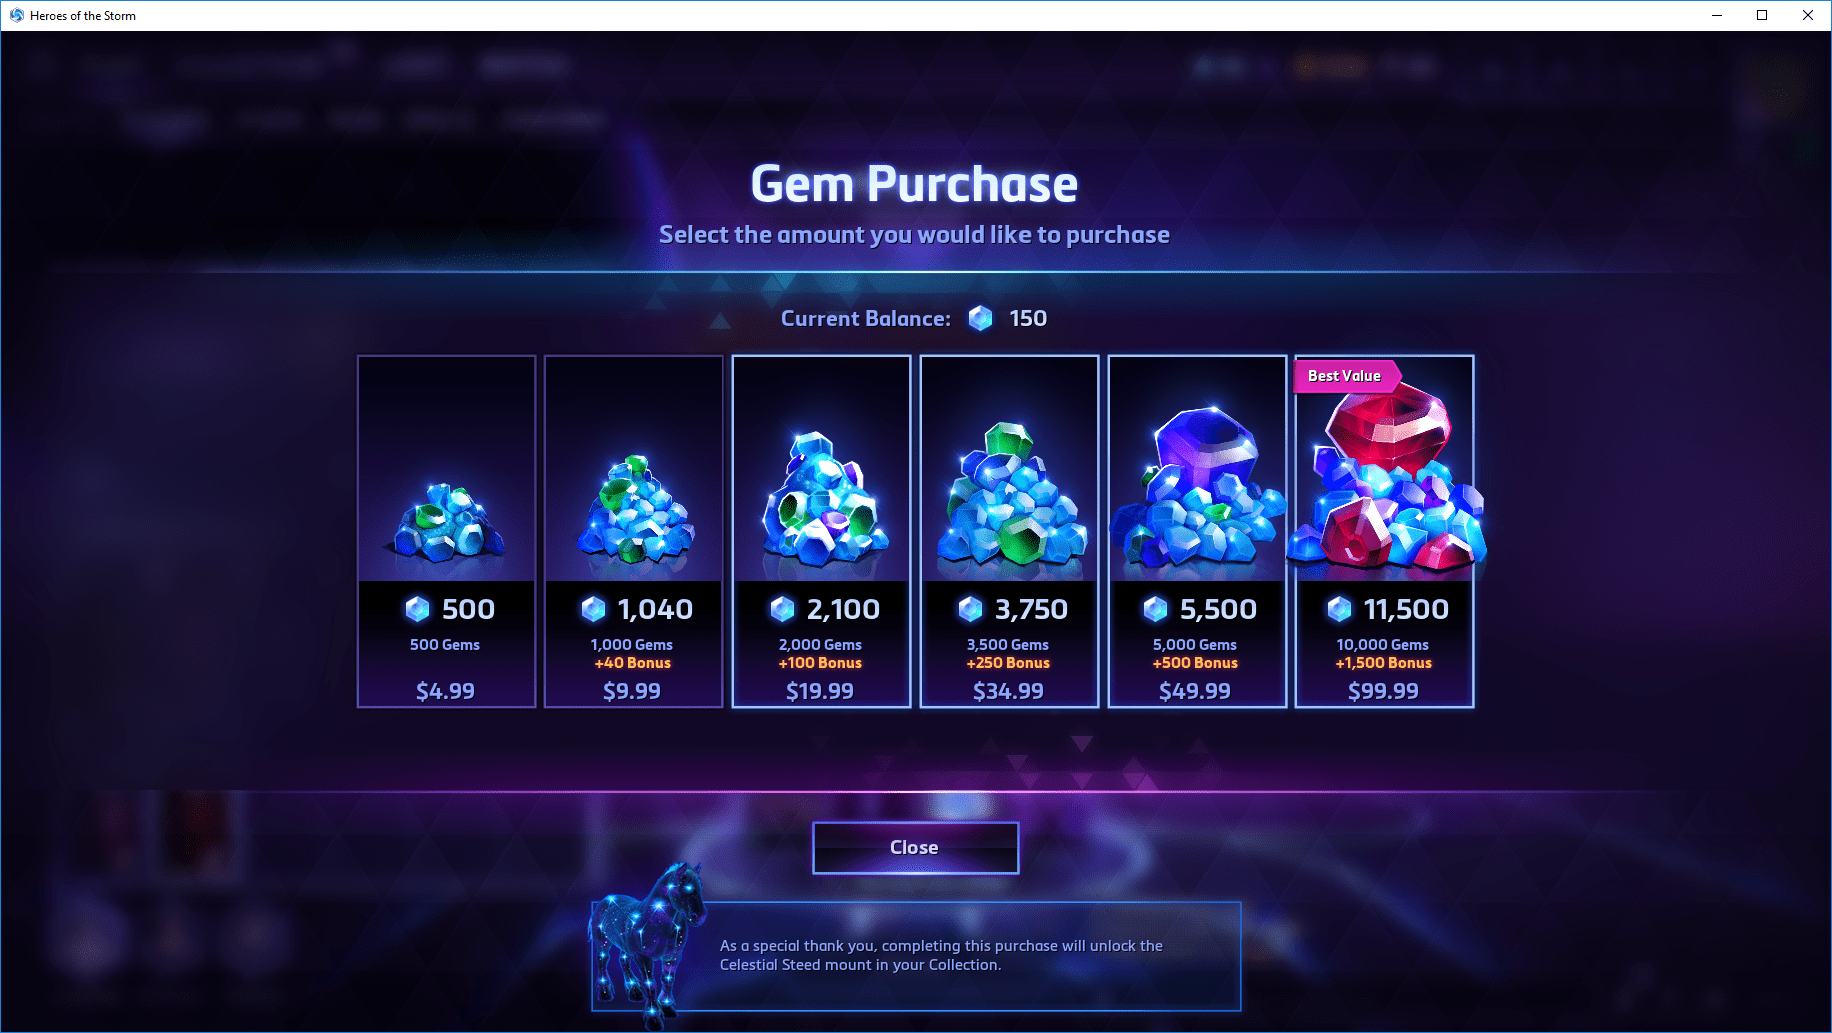 Heroes of the Storm Gem Purchase